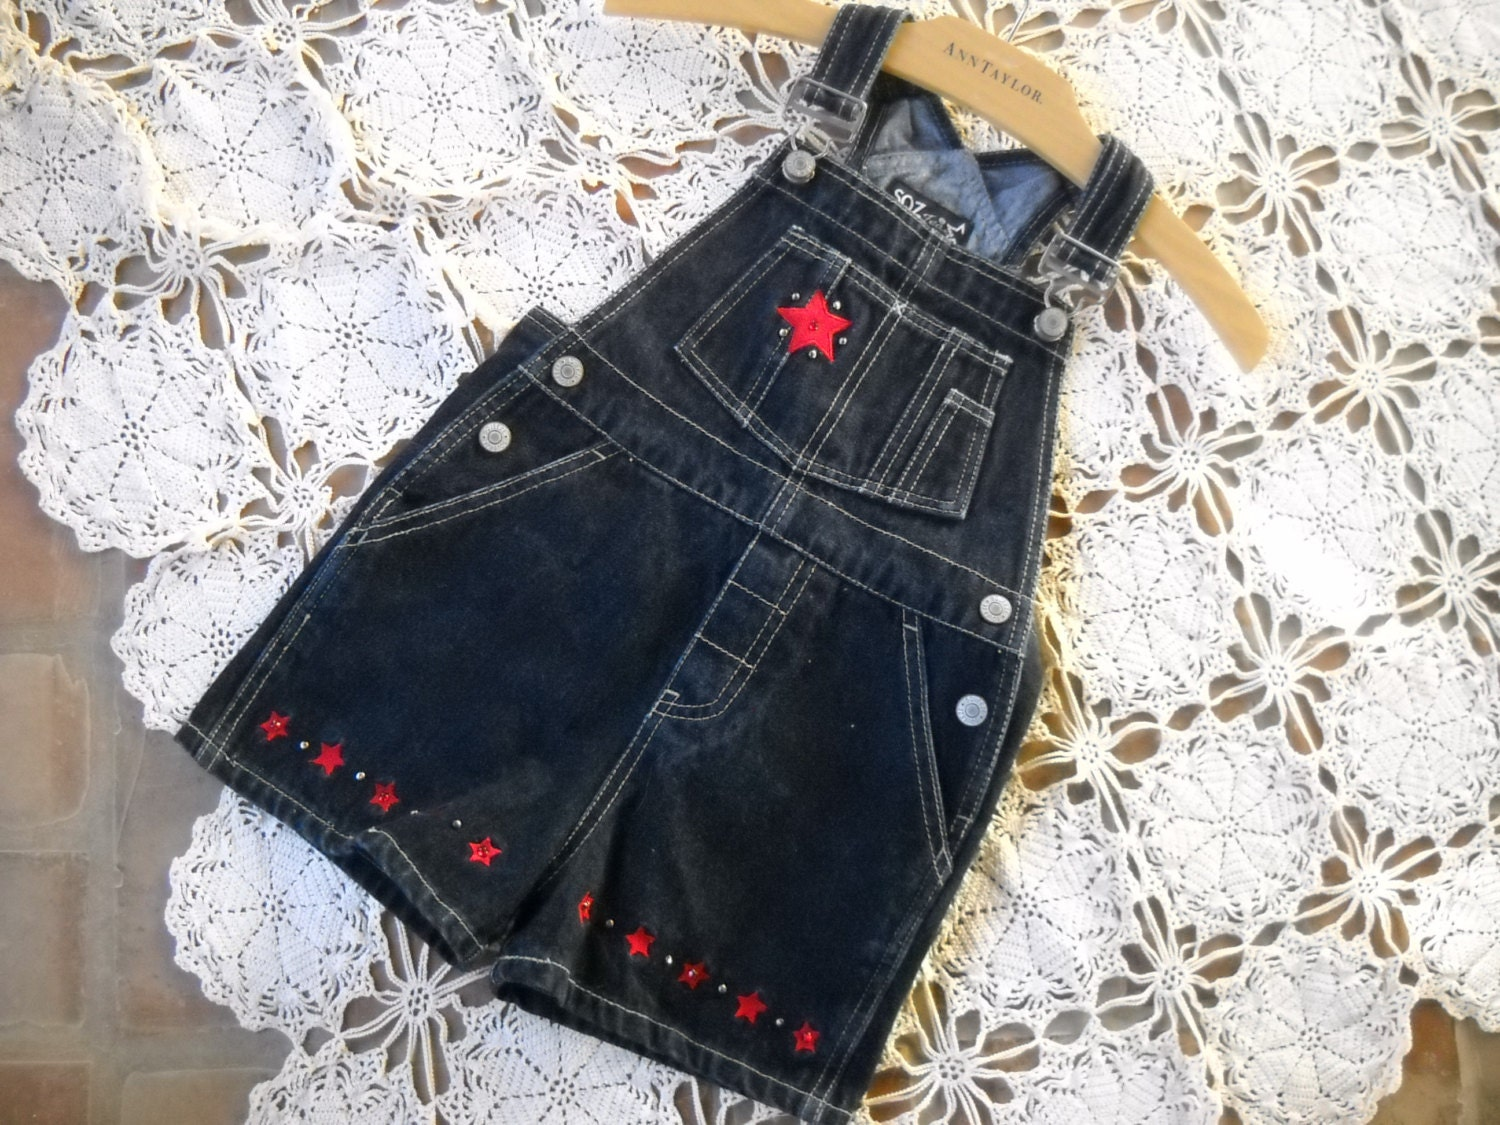 Vintage Overalls & Jumpsuits Boys Or Girls Bib Overalls, Patriotic Navy Denim With Embroidered Stars Size L, 6x, Classic Overall Styling Rhinstones  Stud Accents $7.80 AT vintagedancer.com